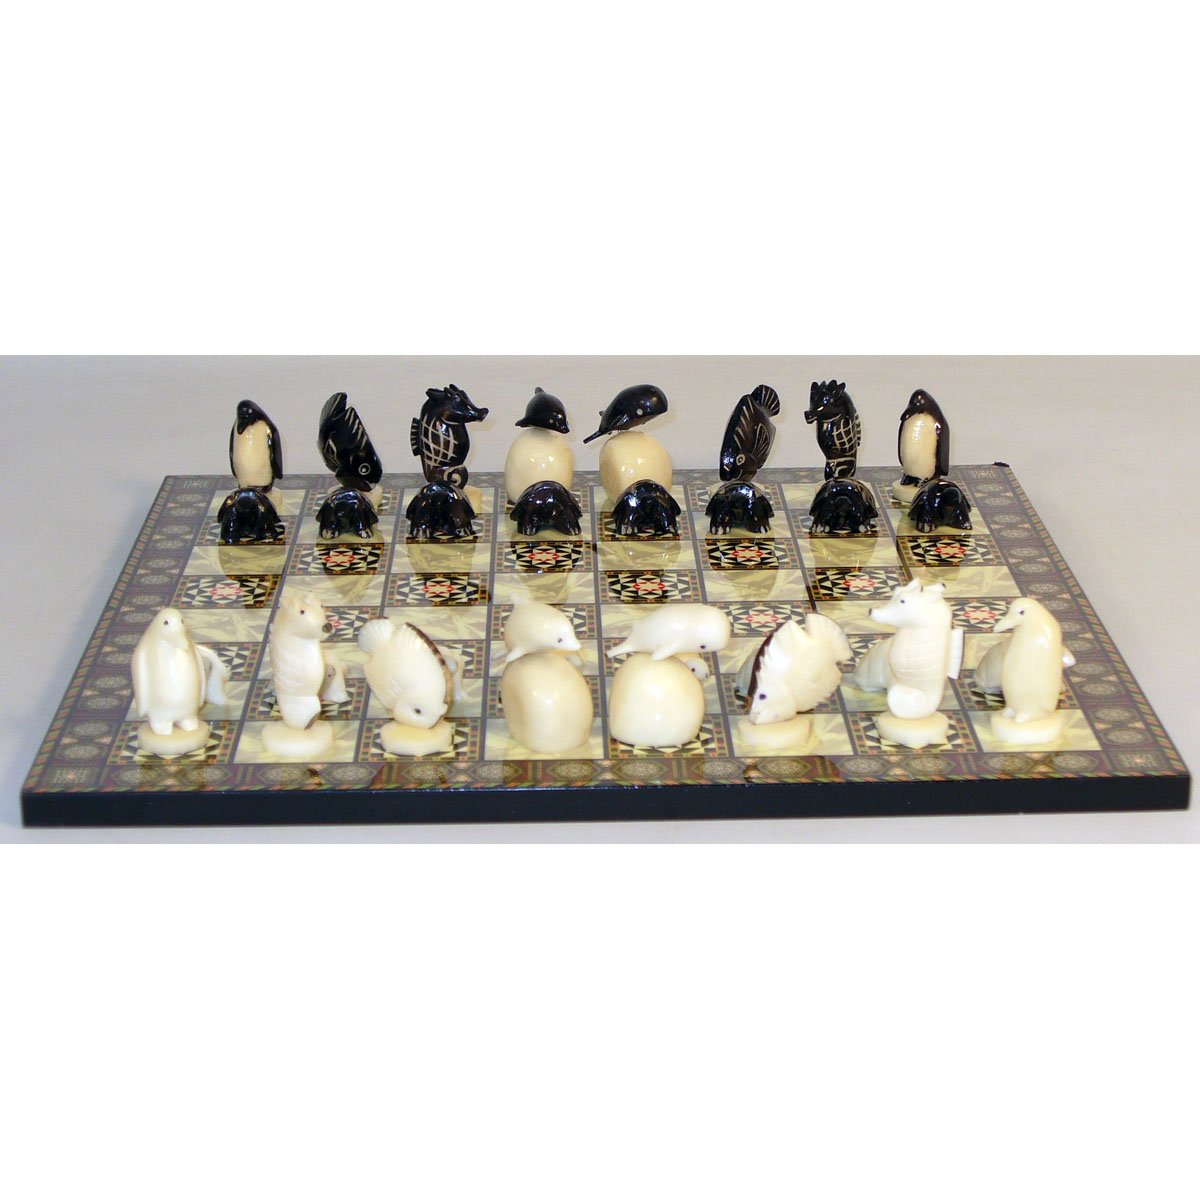 100 Chess Board Amazon Star Wars Chess Set Chess